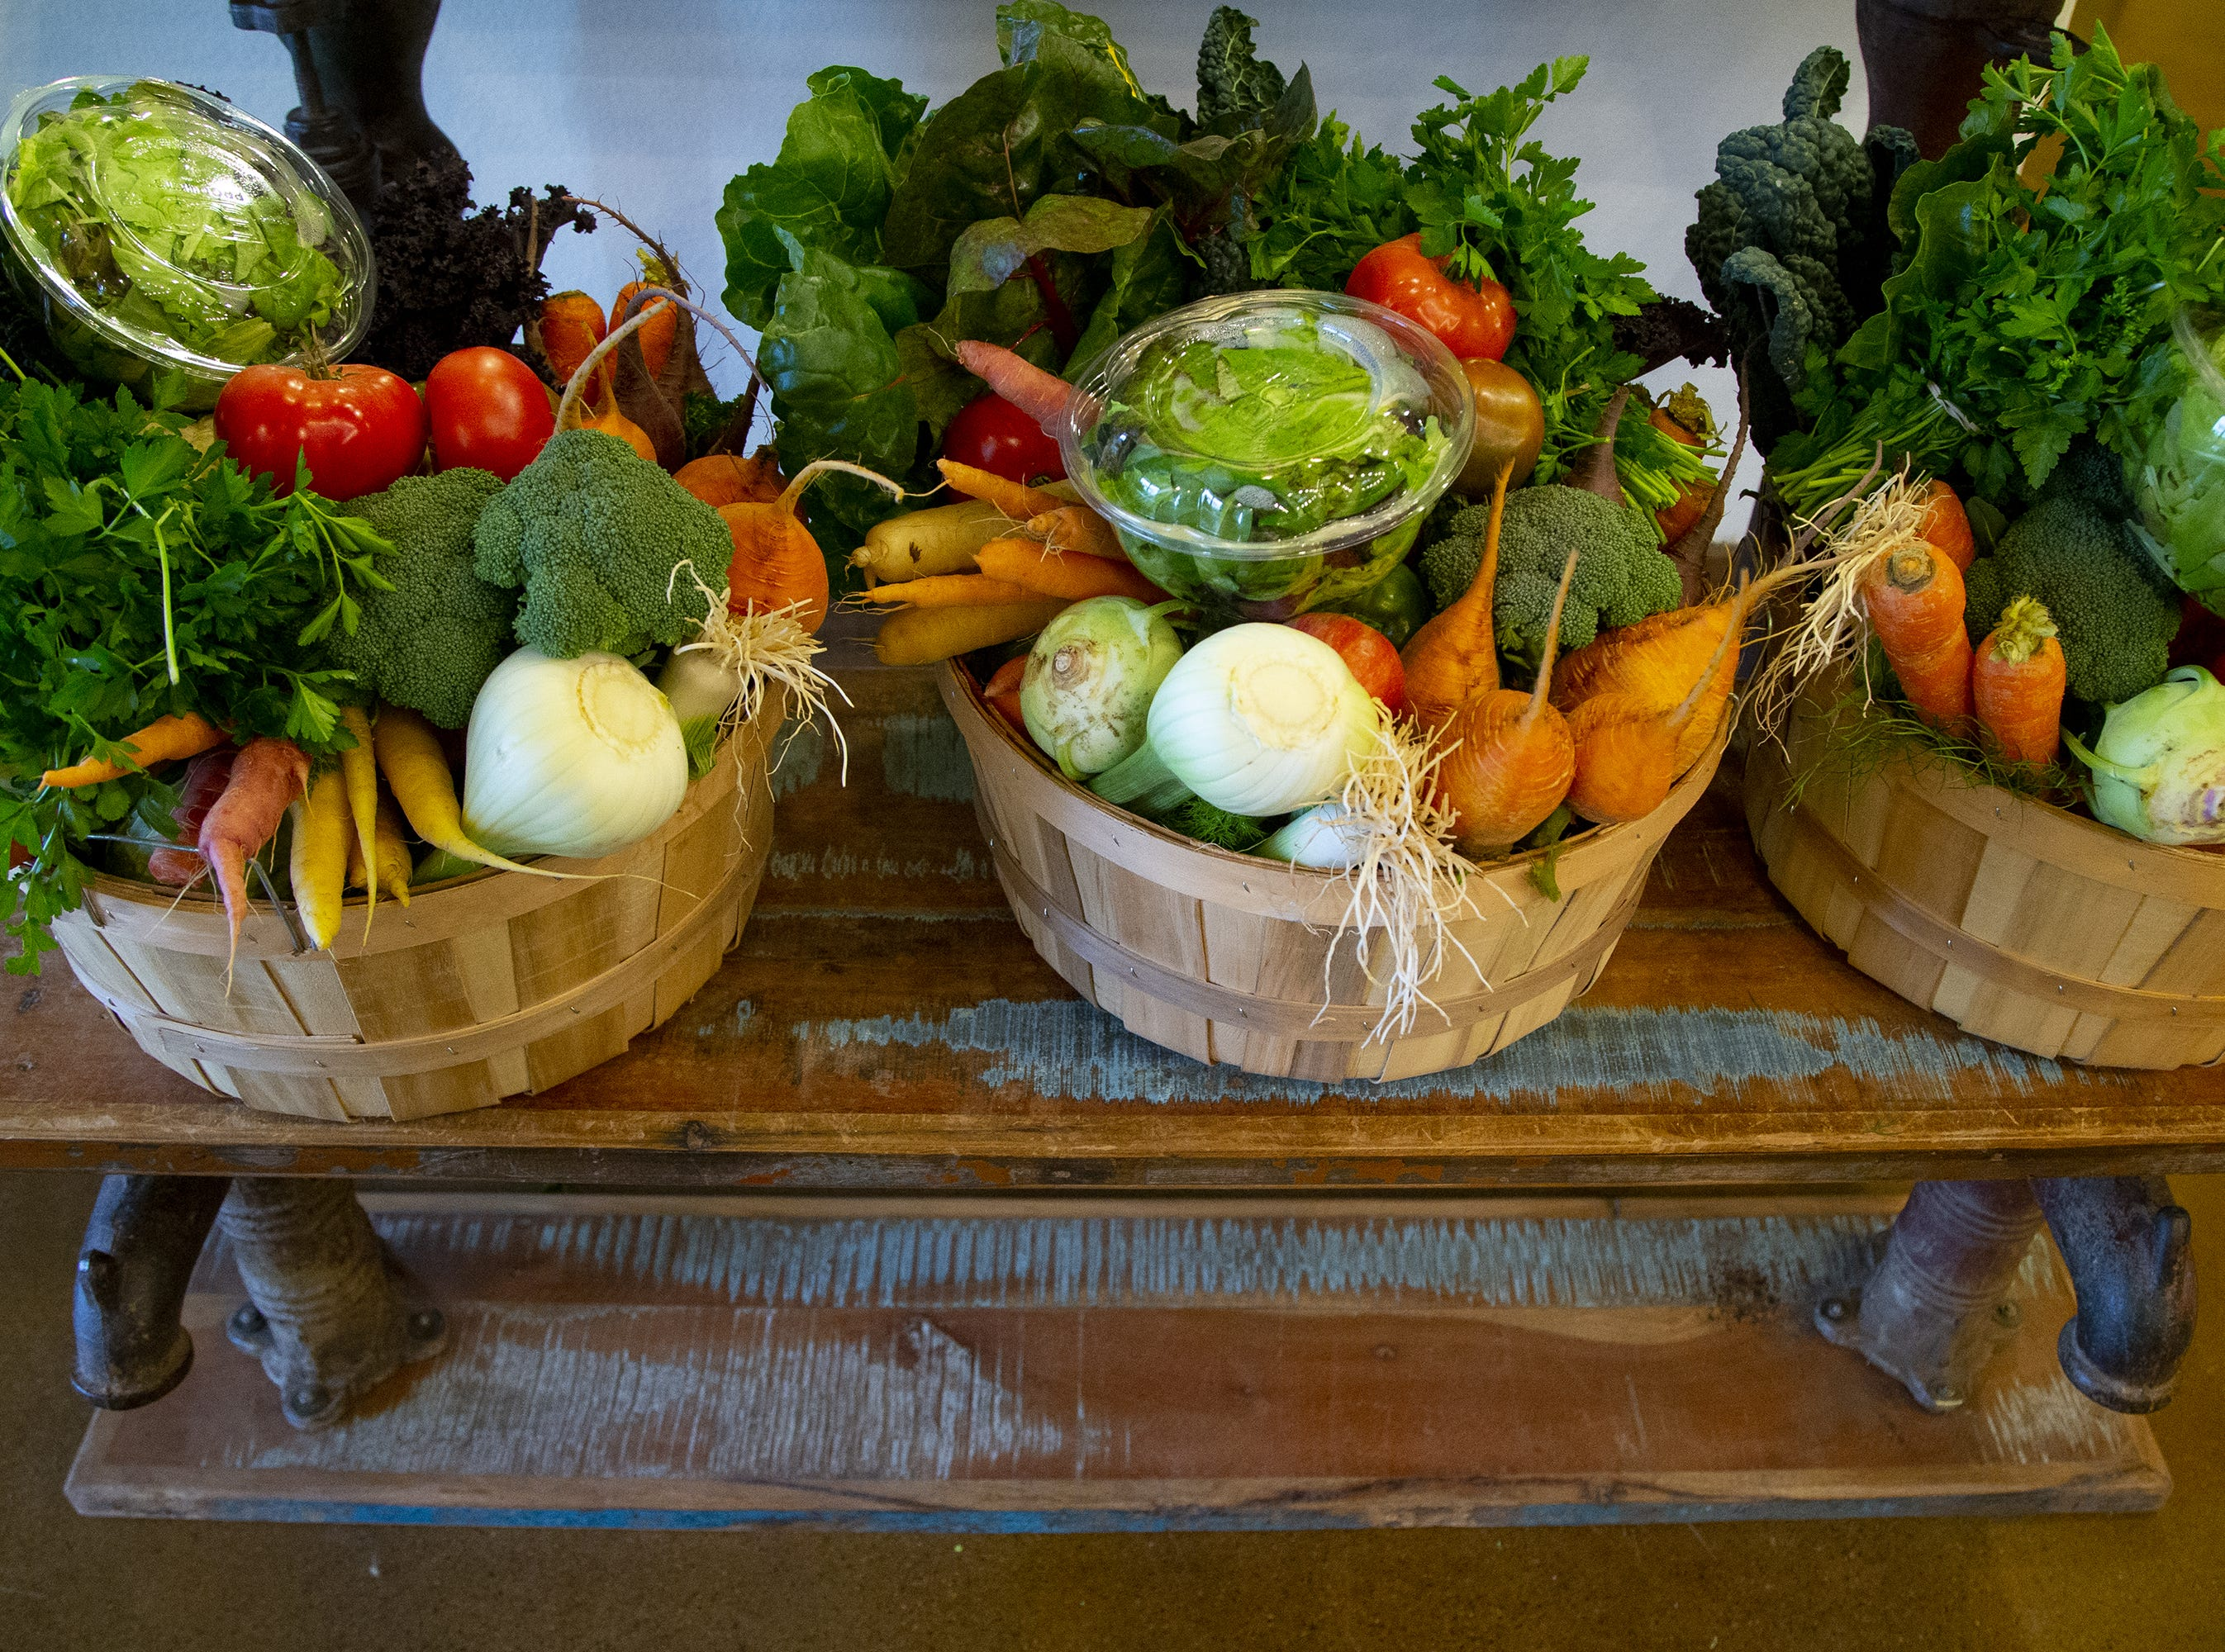 Vegetable baskets from Singh Meadows market in Tempe.